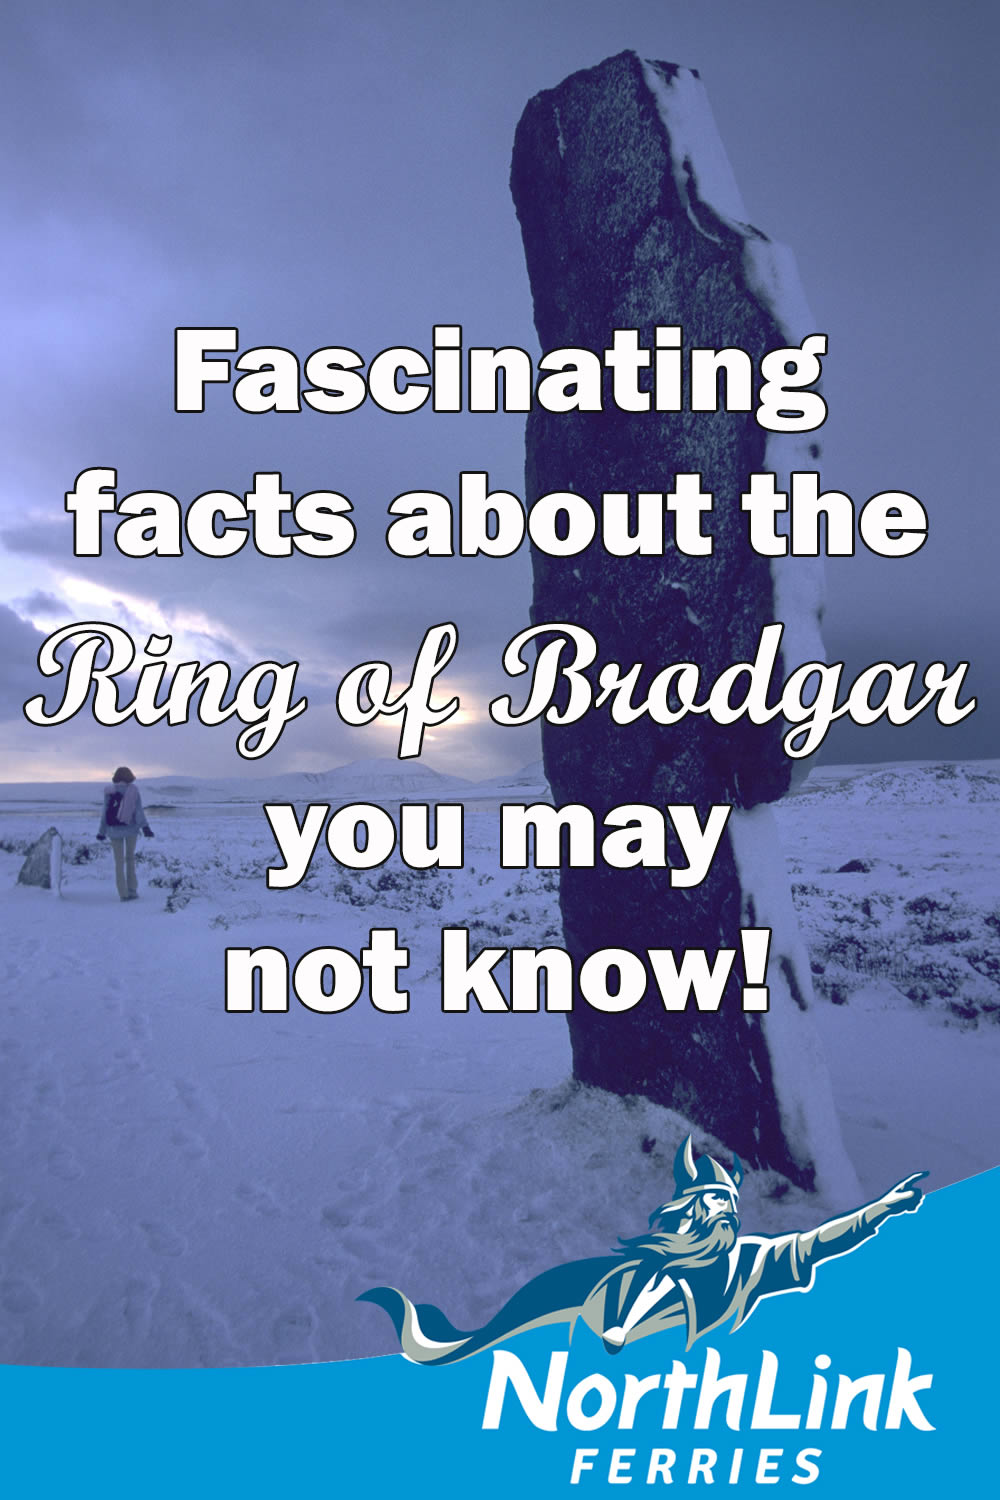 Fascinating facts about the Ring of Brodgar you may not know!